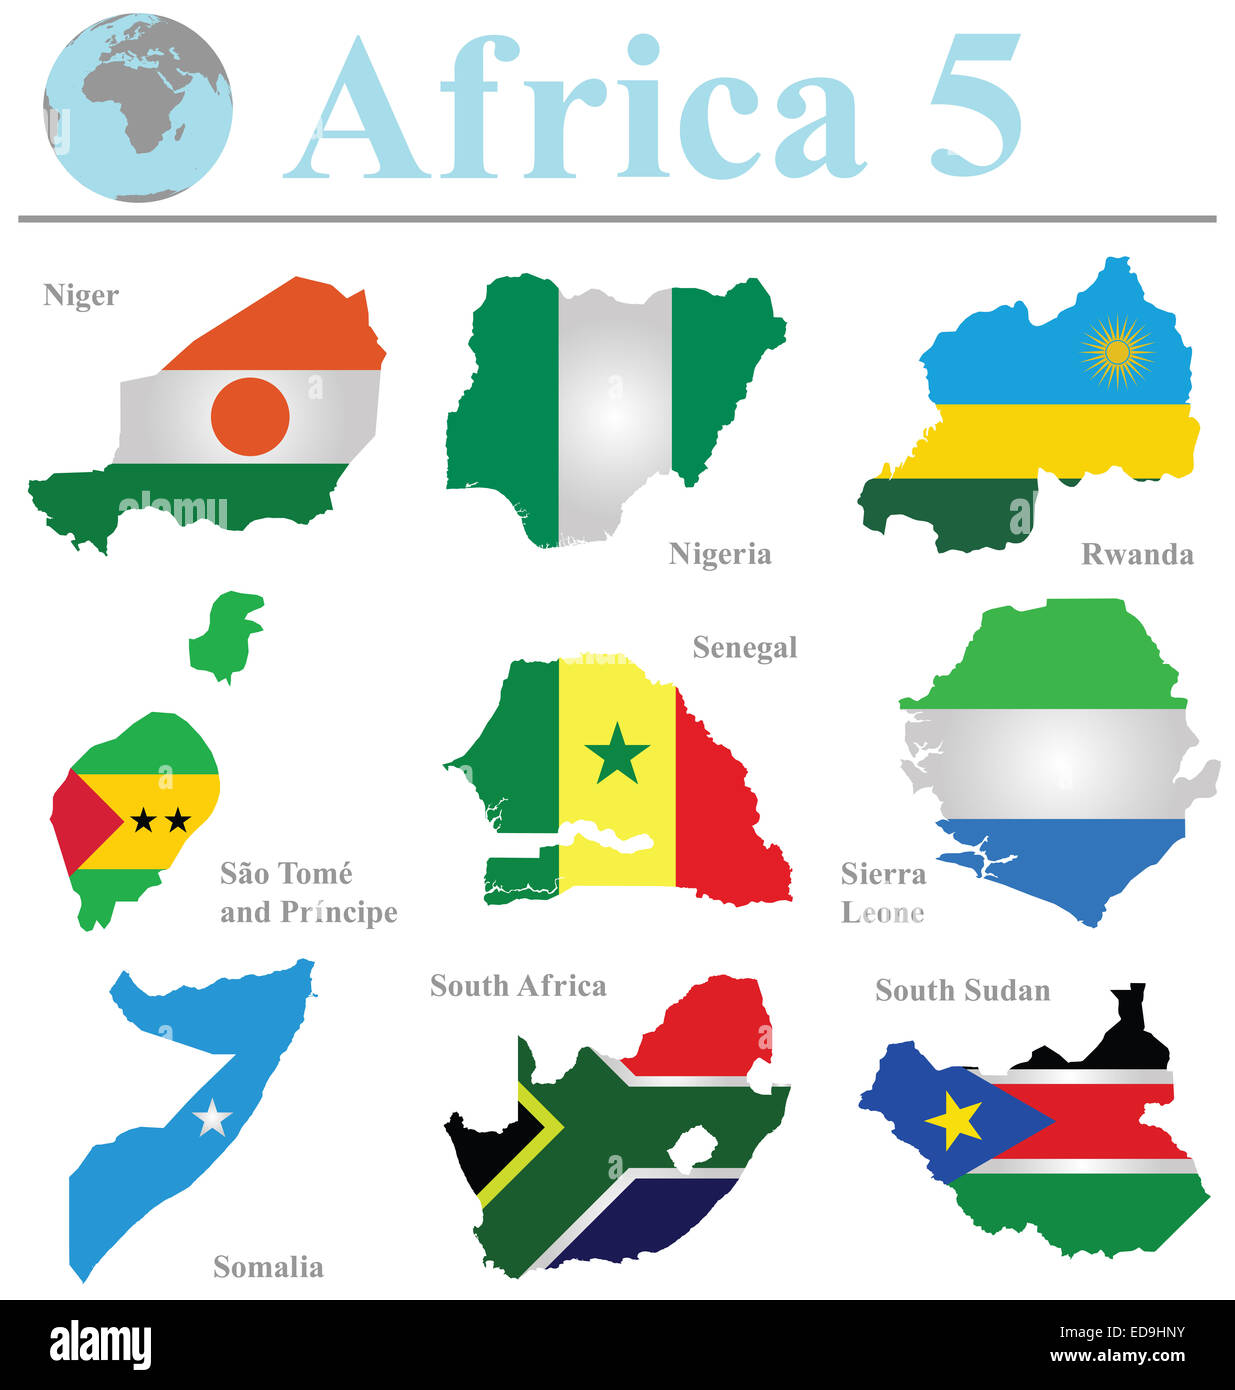 Flags of Africa collection 5 overlaid on outline map isolated on white background - Stock Image